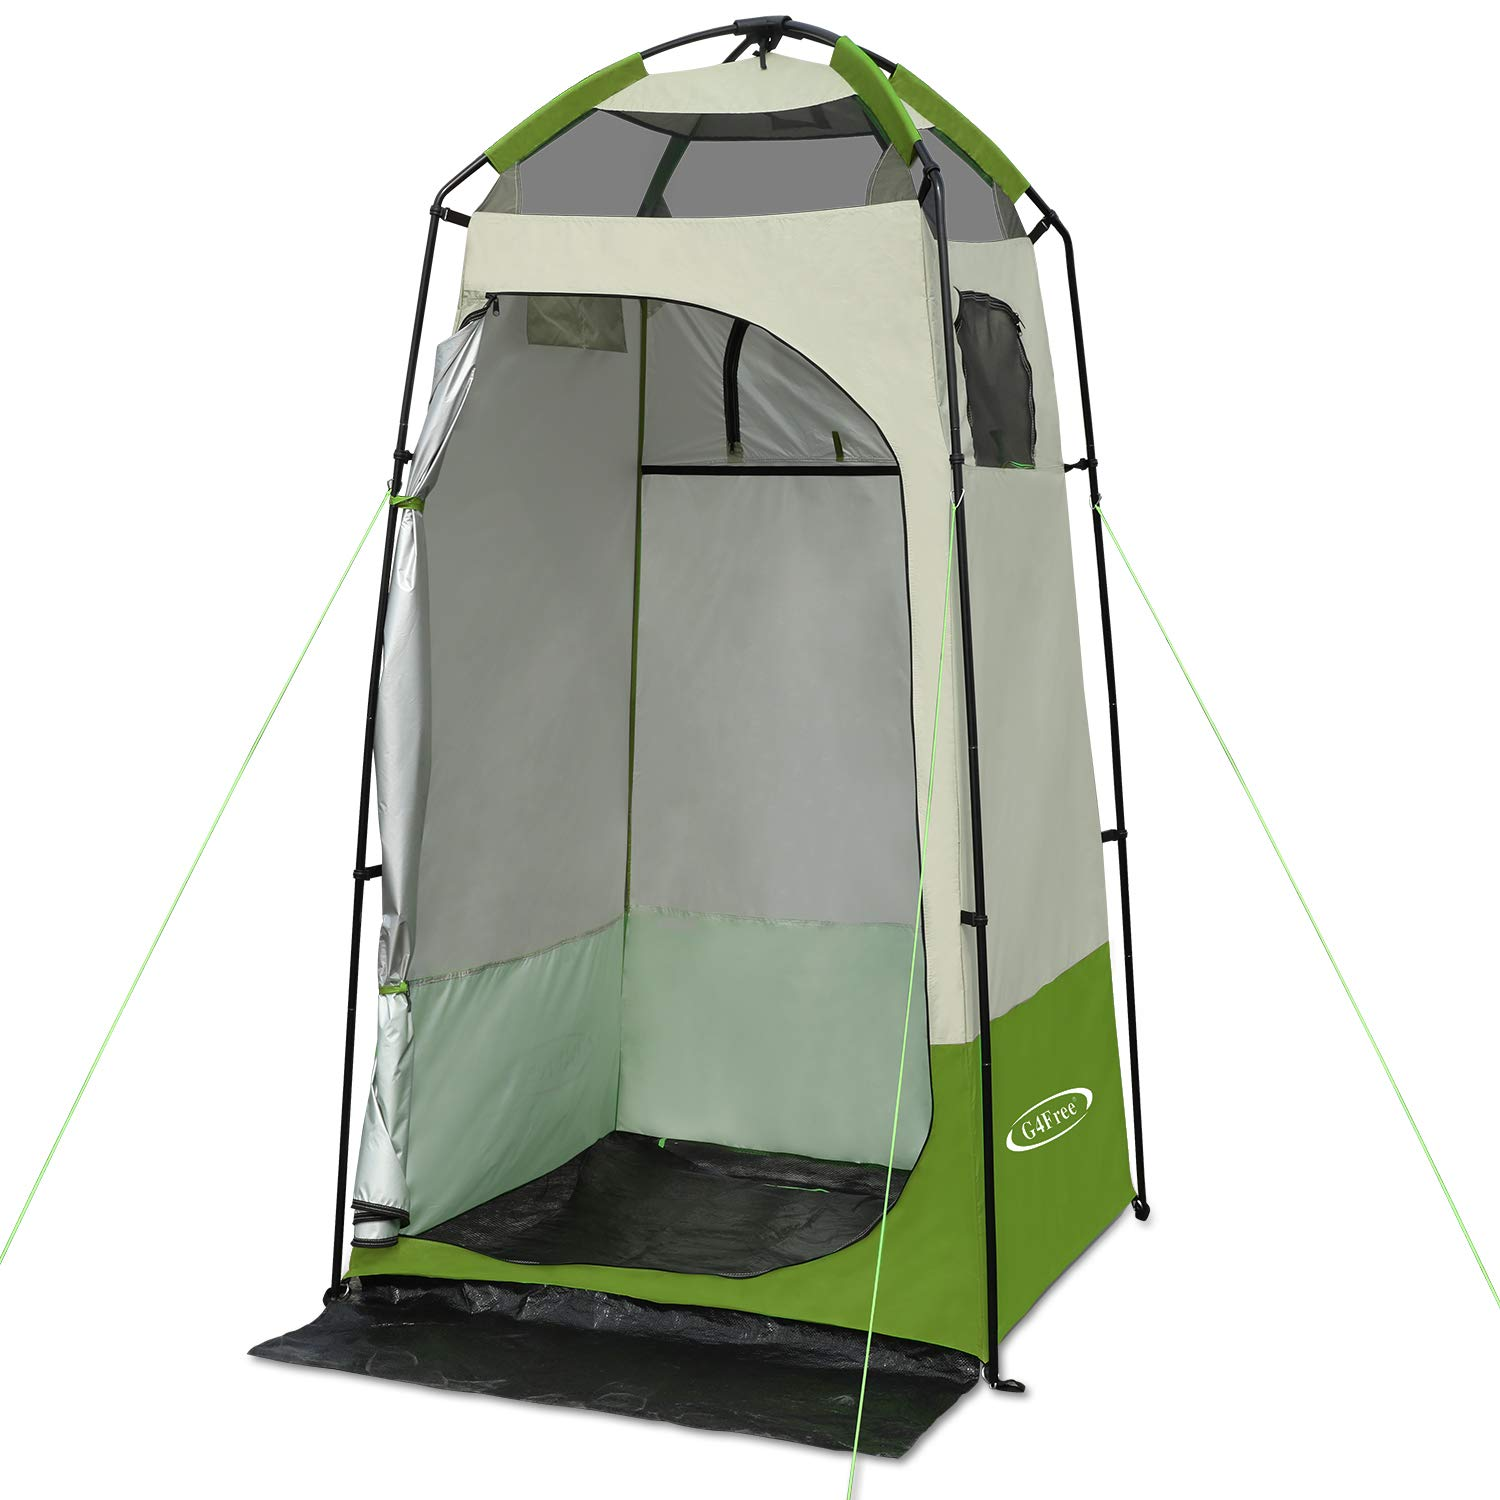 G4Free Privacy Shelter Tents Dressing Changing Room Deluxe Shower Toilet Camping by G4Free